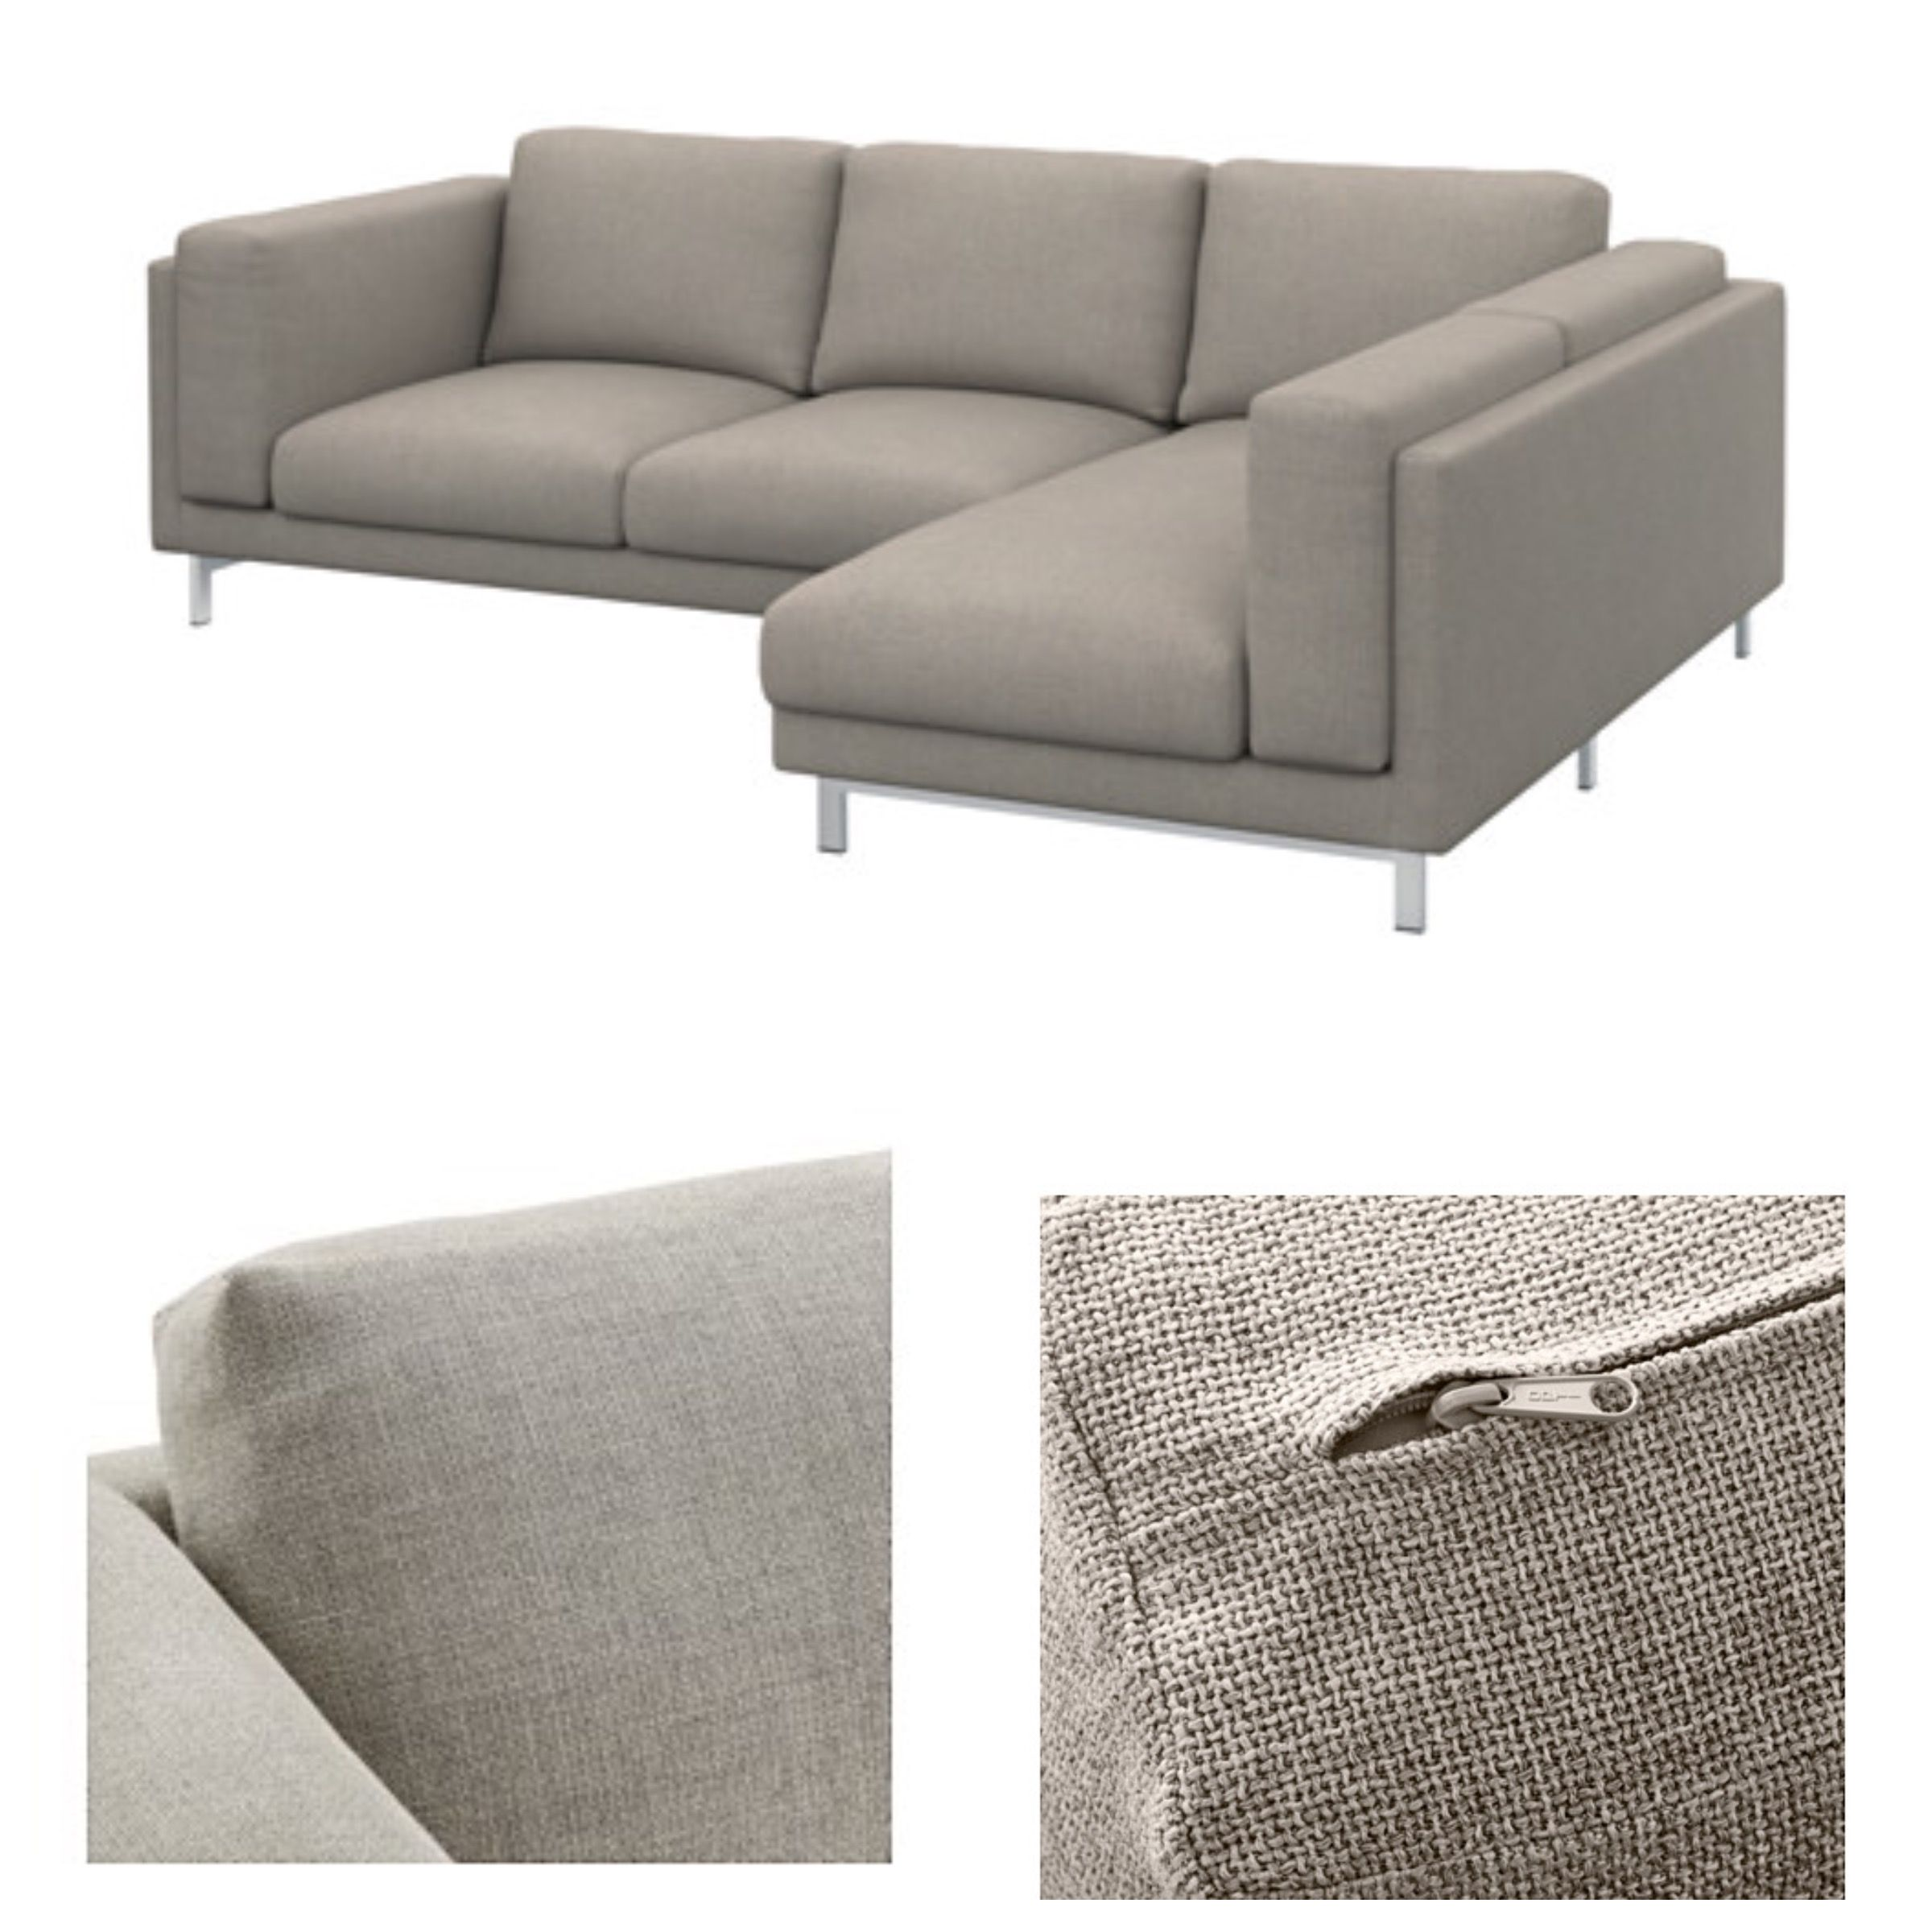 Ikea Sofa Nockeby Test Ikea Nockeby Two Seat Sofa W Chaise Longue Right Tenö